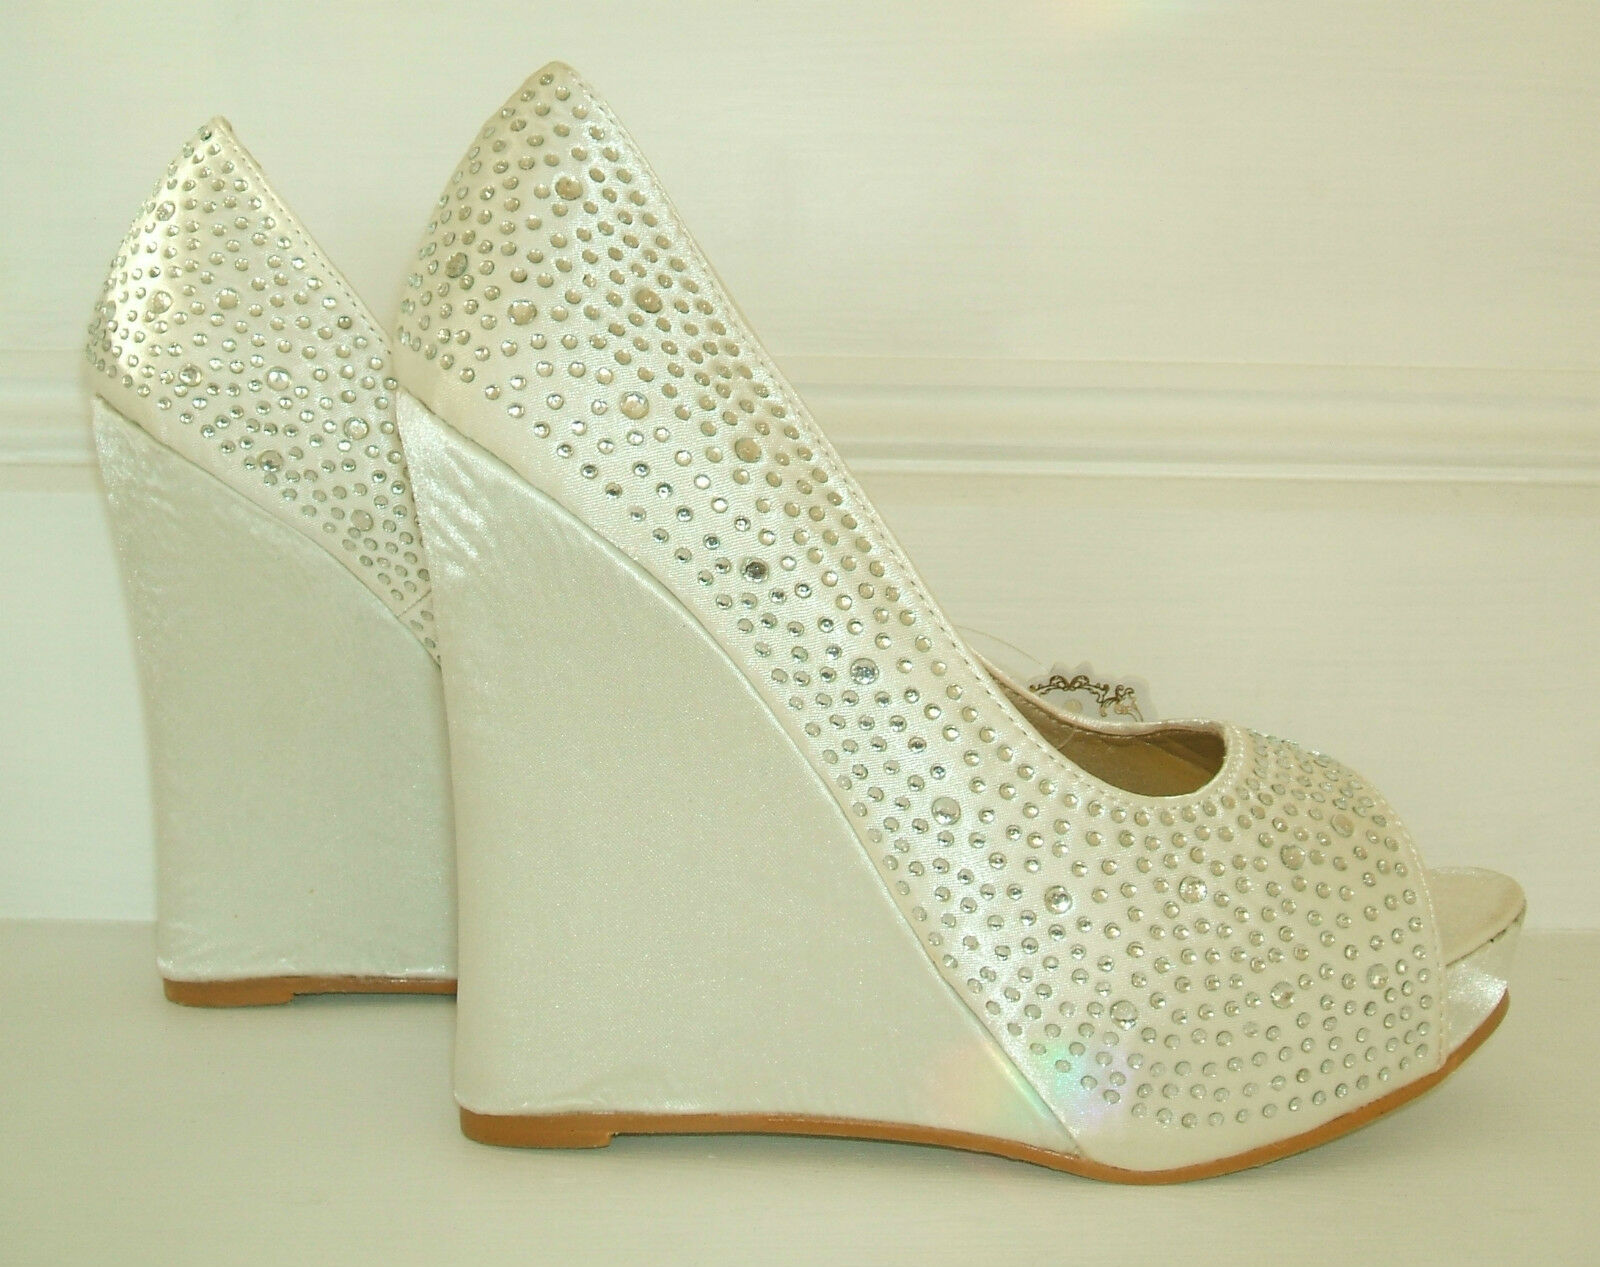 NEW SIZE 3 4 5 7 WHITE OR IVORY SATIN  DIAMANTE HIGH WEDGE BRIDAL OCCASION SHOES